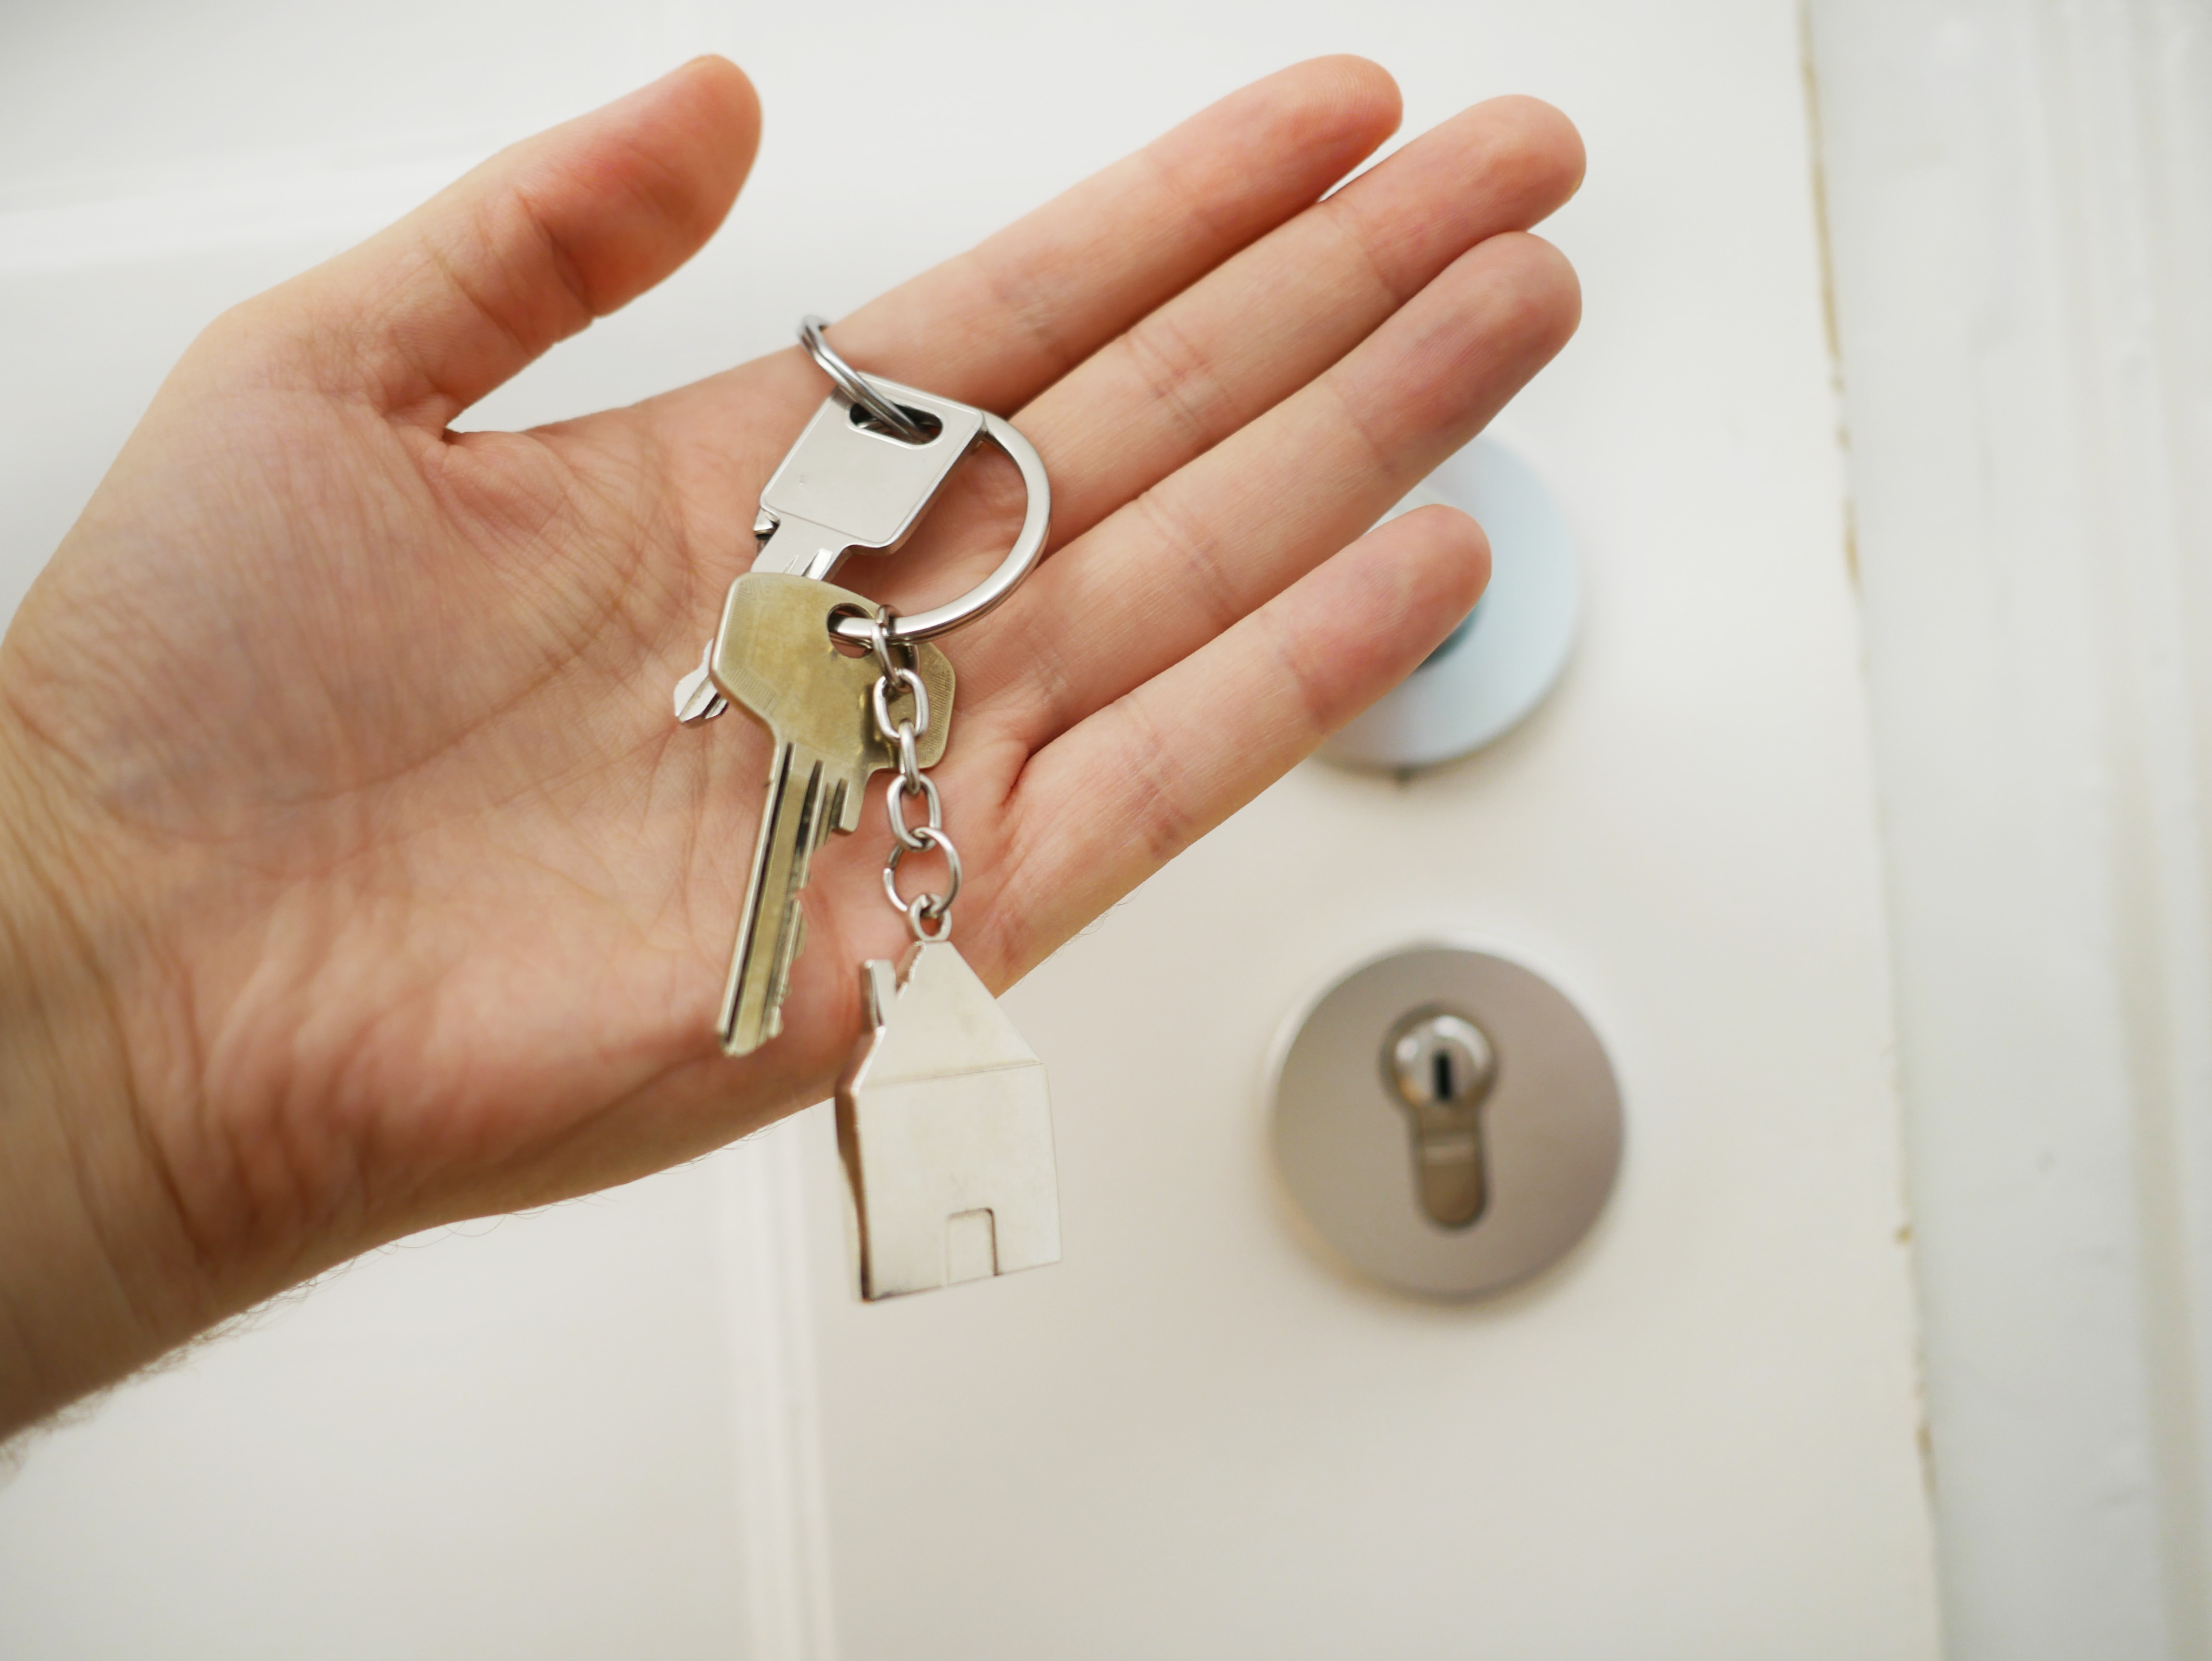 The Best Bluetooth Trackers to Attach to Your Keys